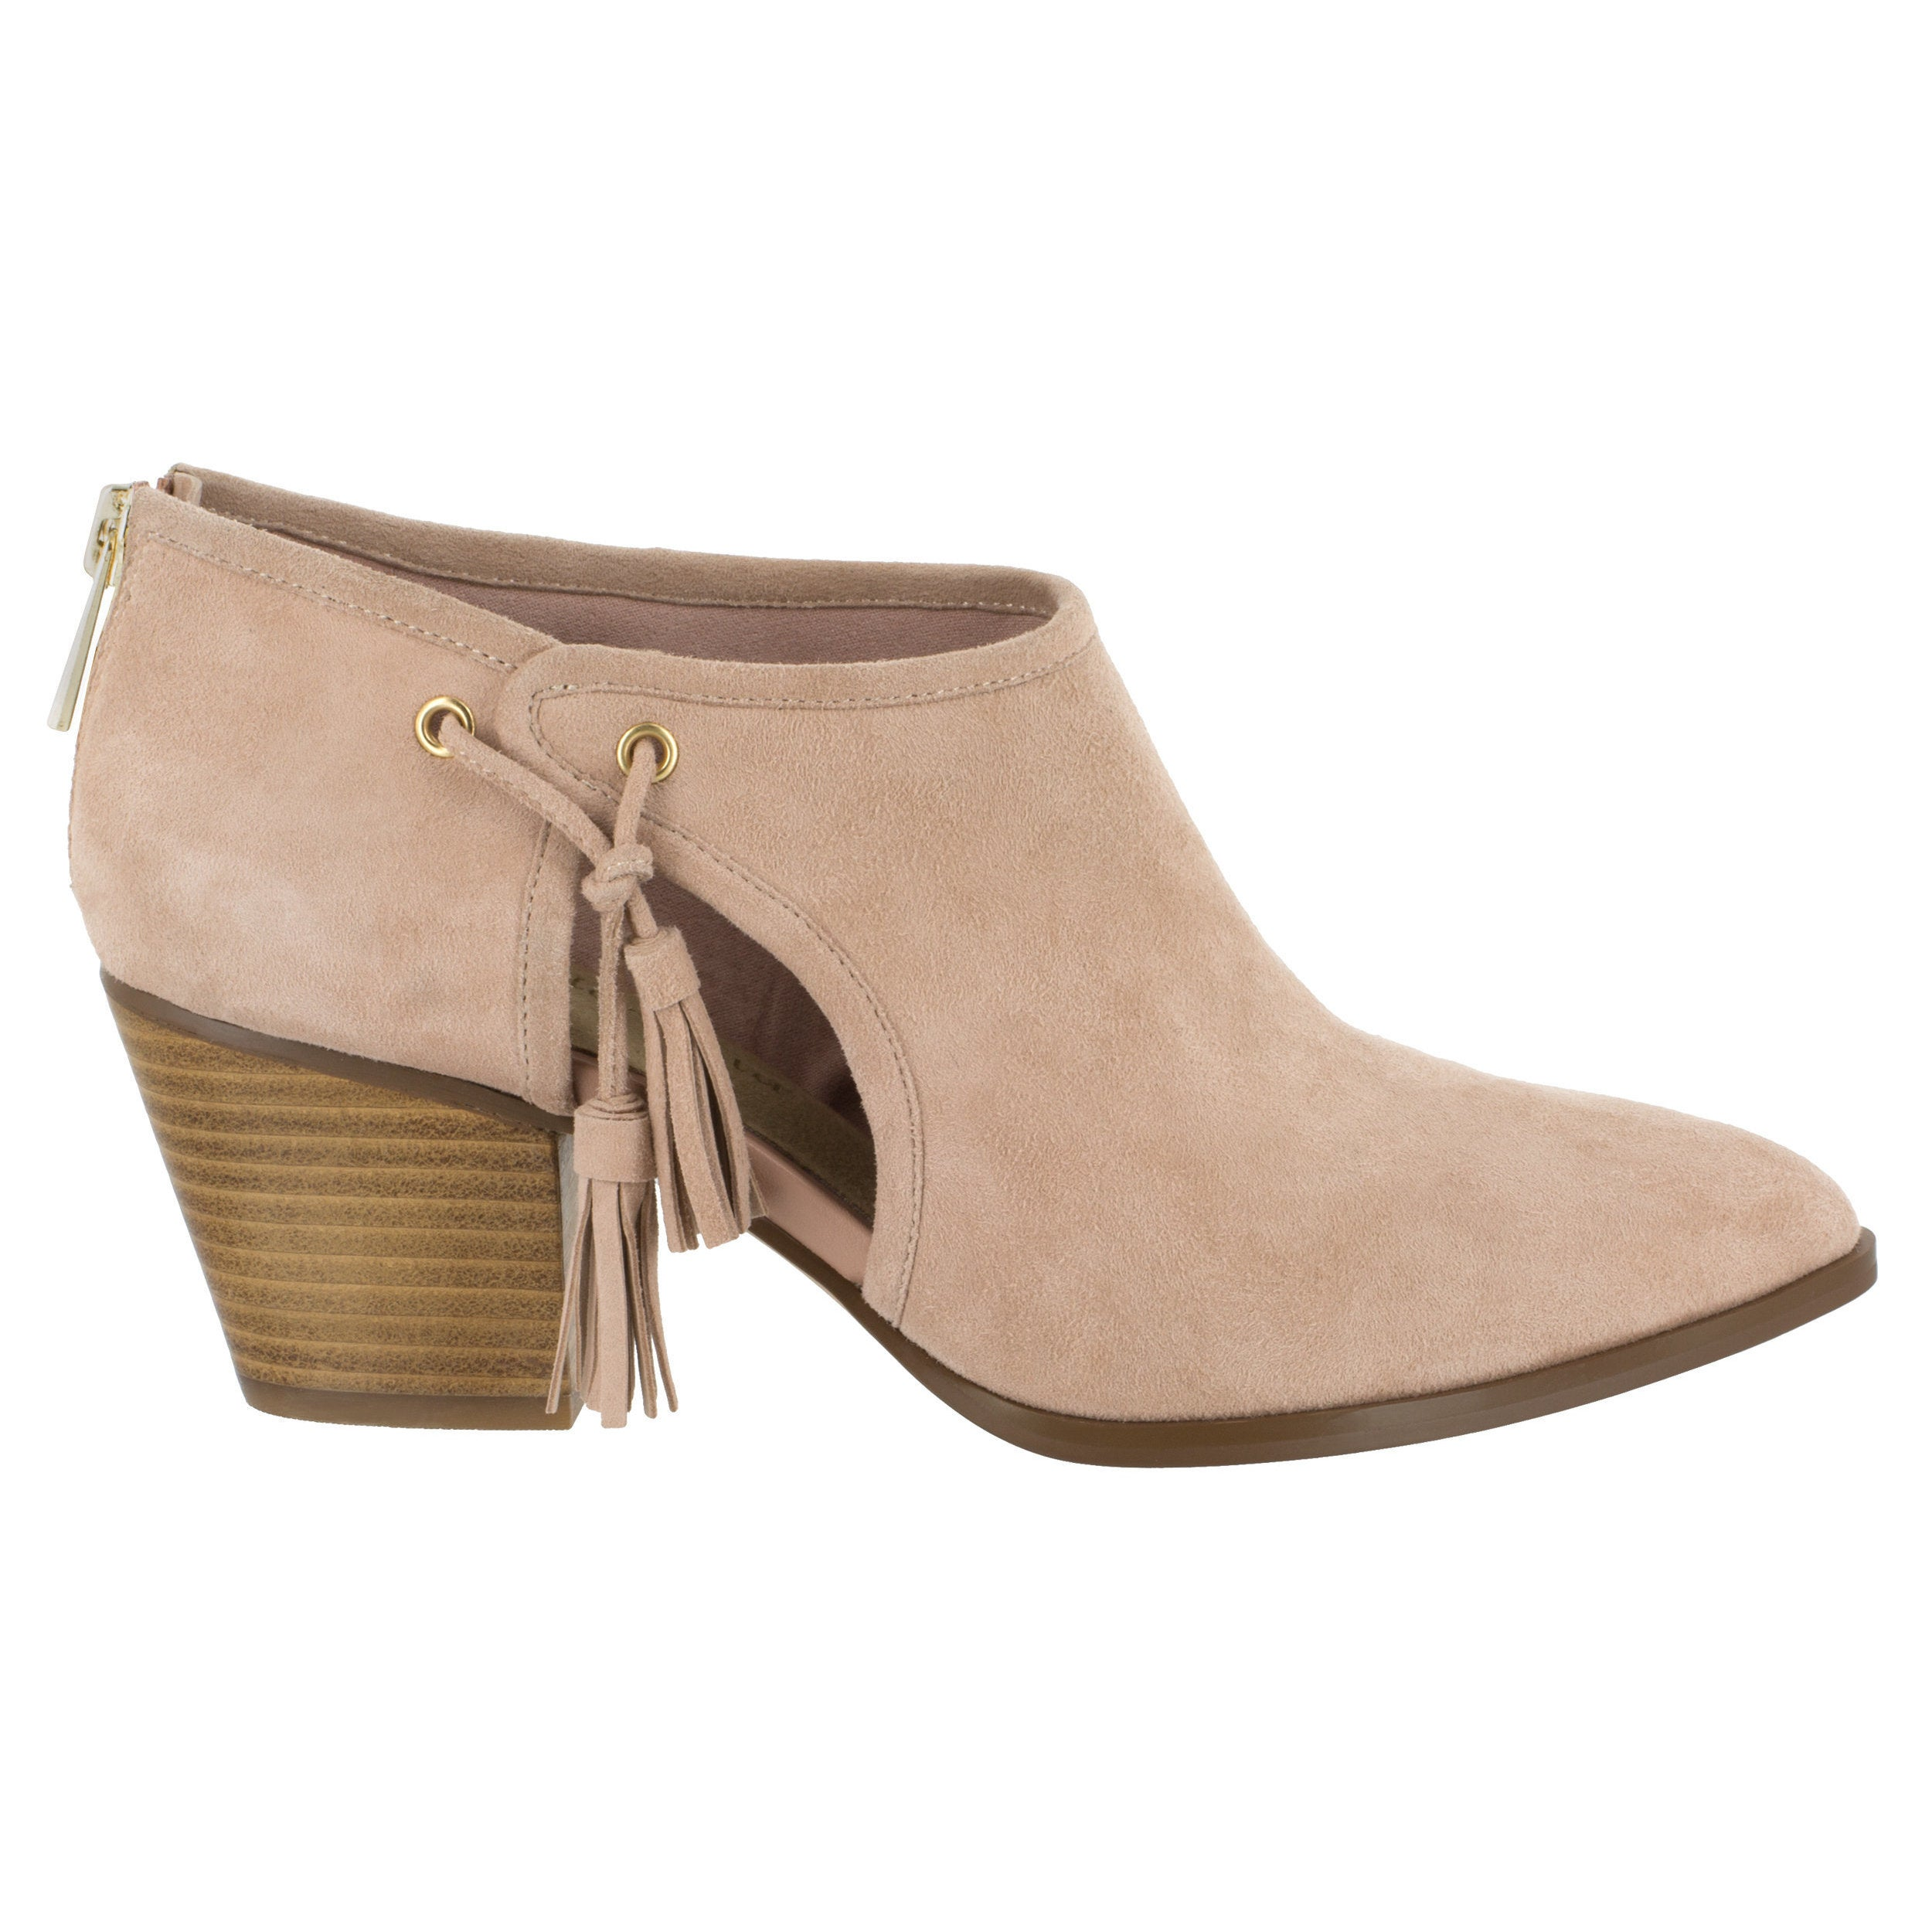 9672ca852f49 Shop Bella Vita Women s Eli Pink Suede Booties - Free Shipping Today -  Overstock - 16684534